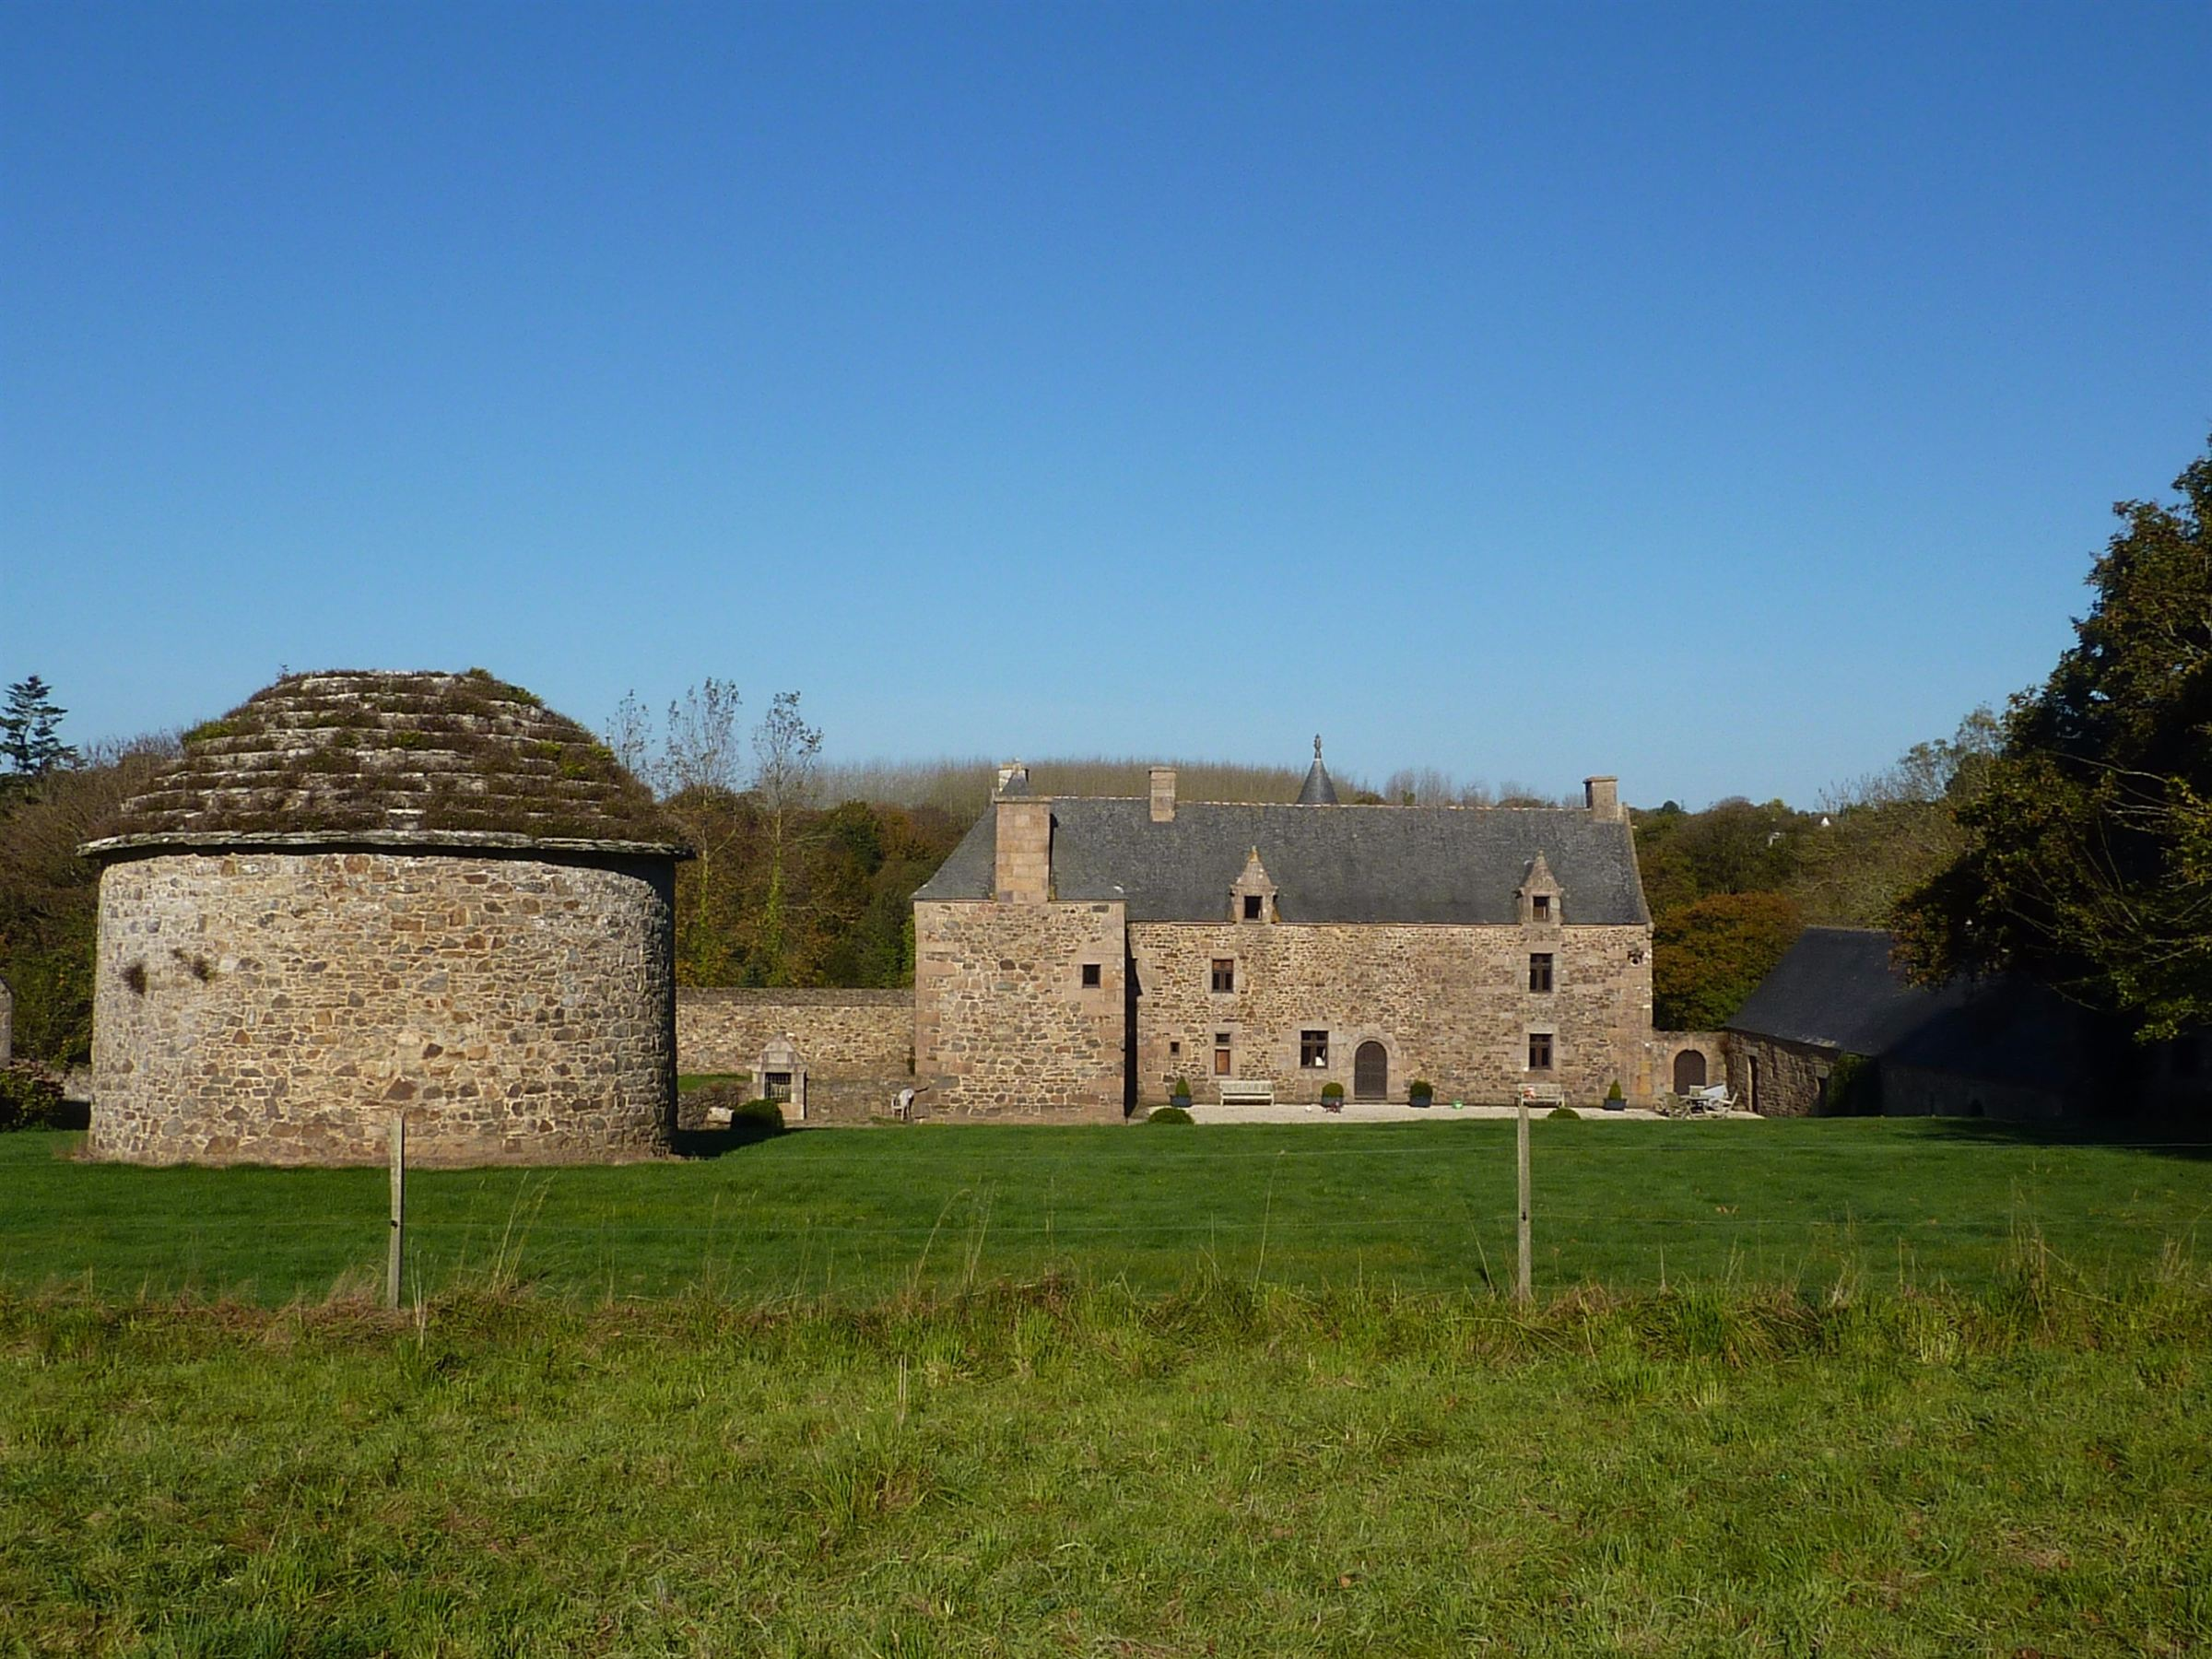 Property For Sale at Listed Manor for sale in Brittany set on 135 acres near the coast